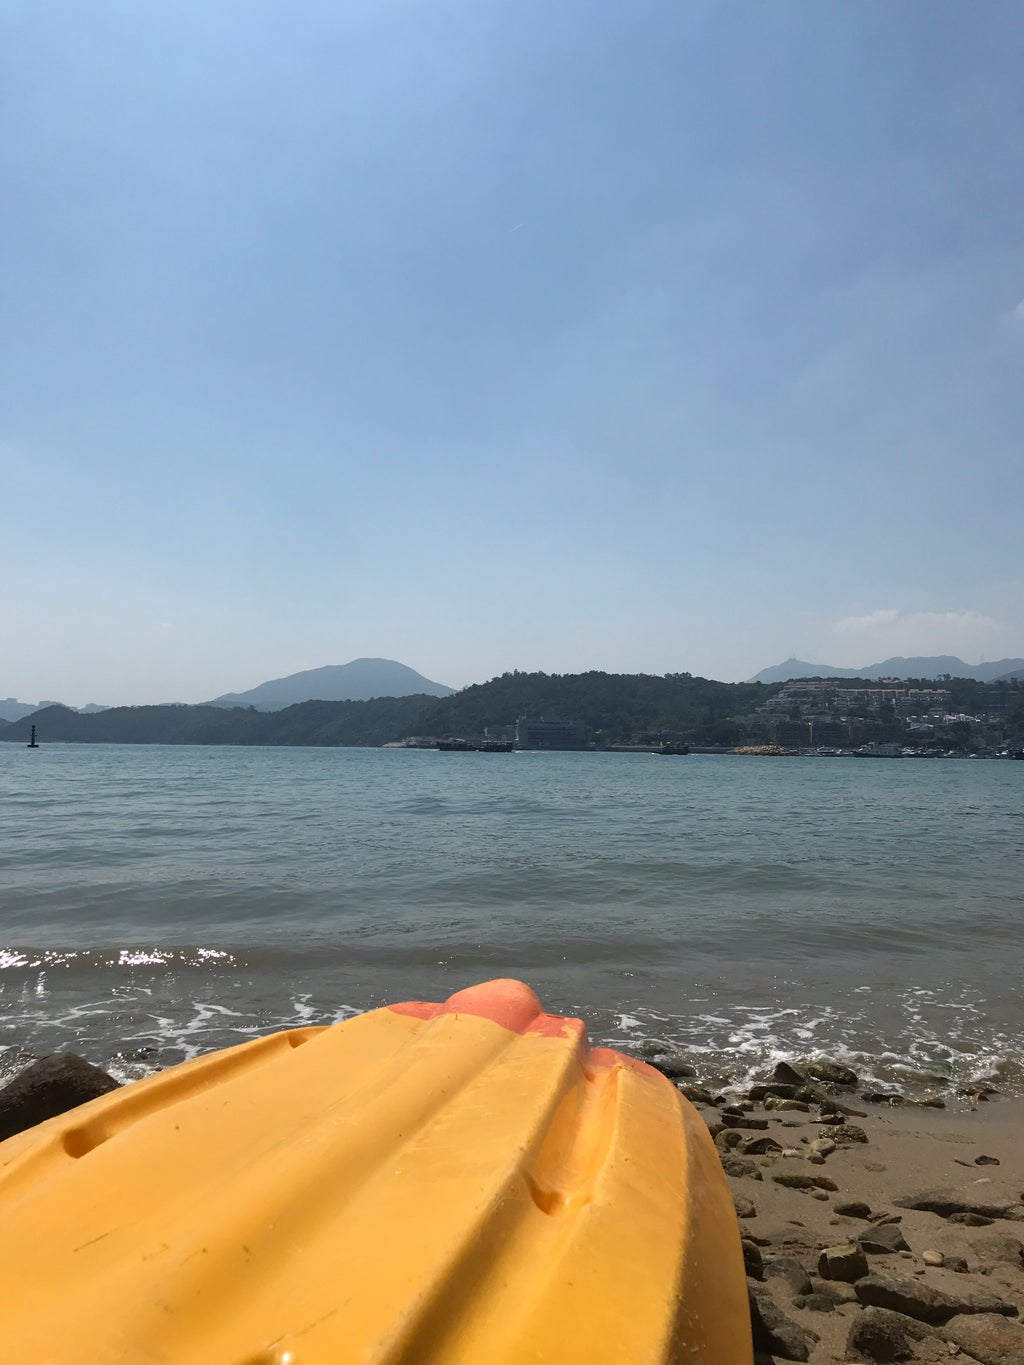 a kayak turned upside down on the beach, an island and clear blue skies in the background